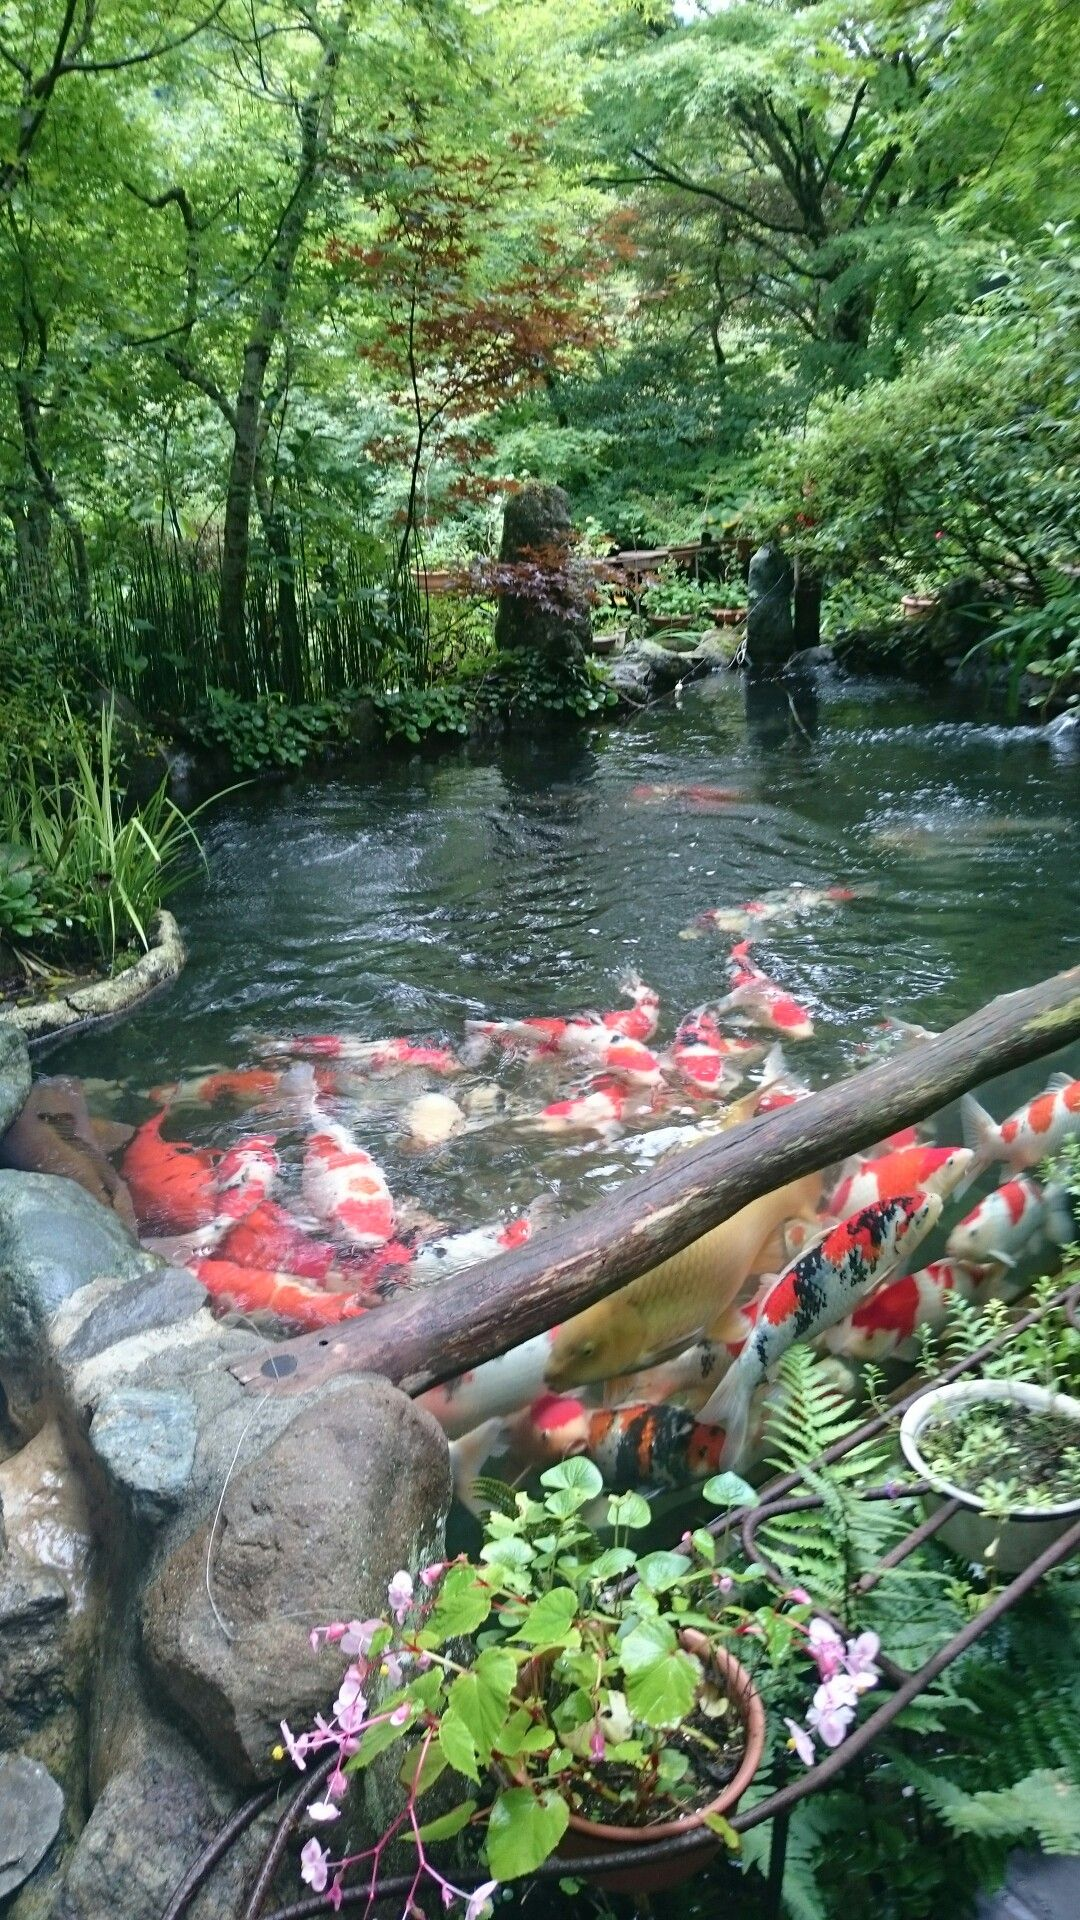 Koi pond garden waterfalls fountains and ponds for Koi ponds and gardens